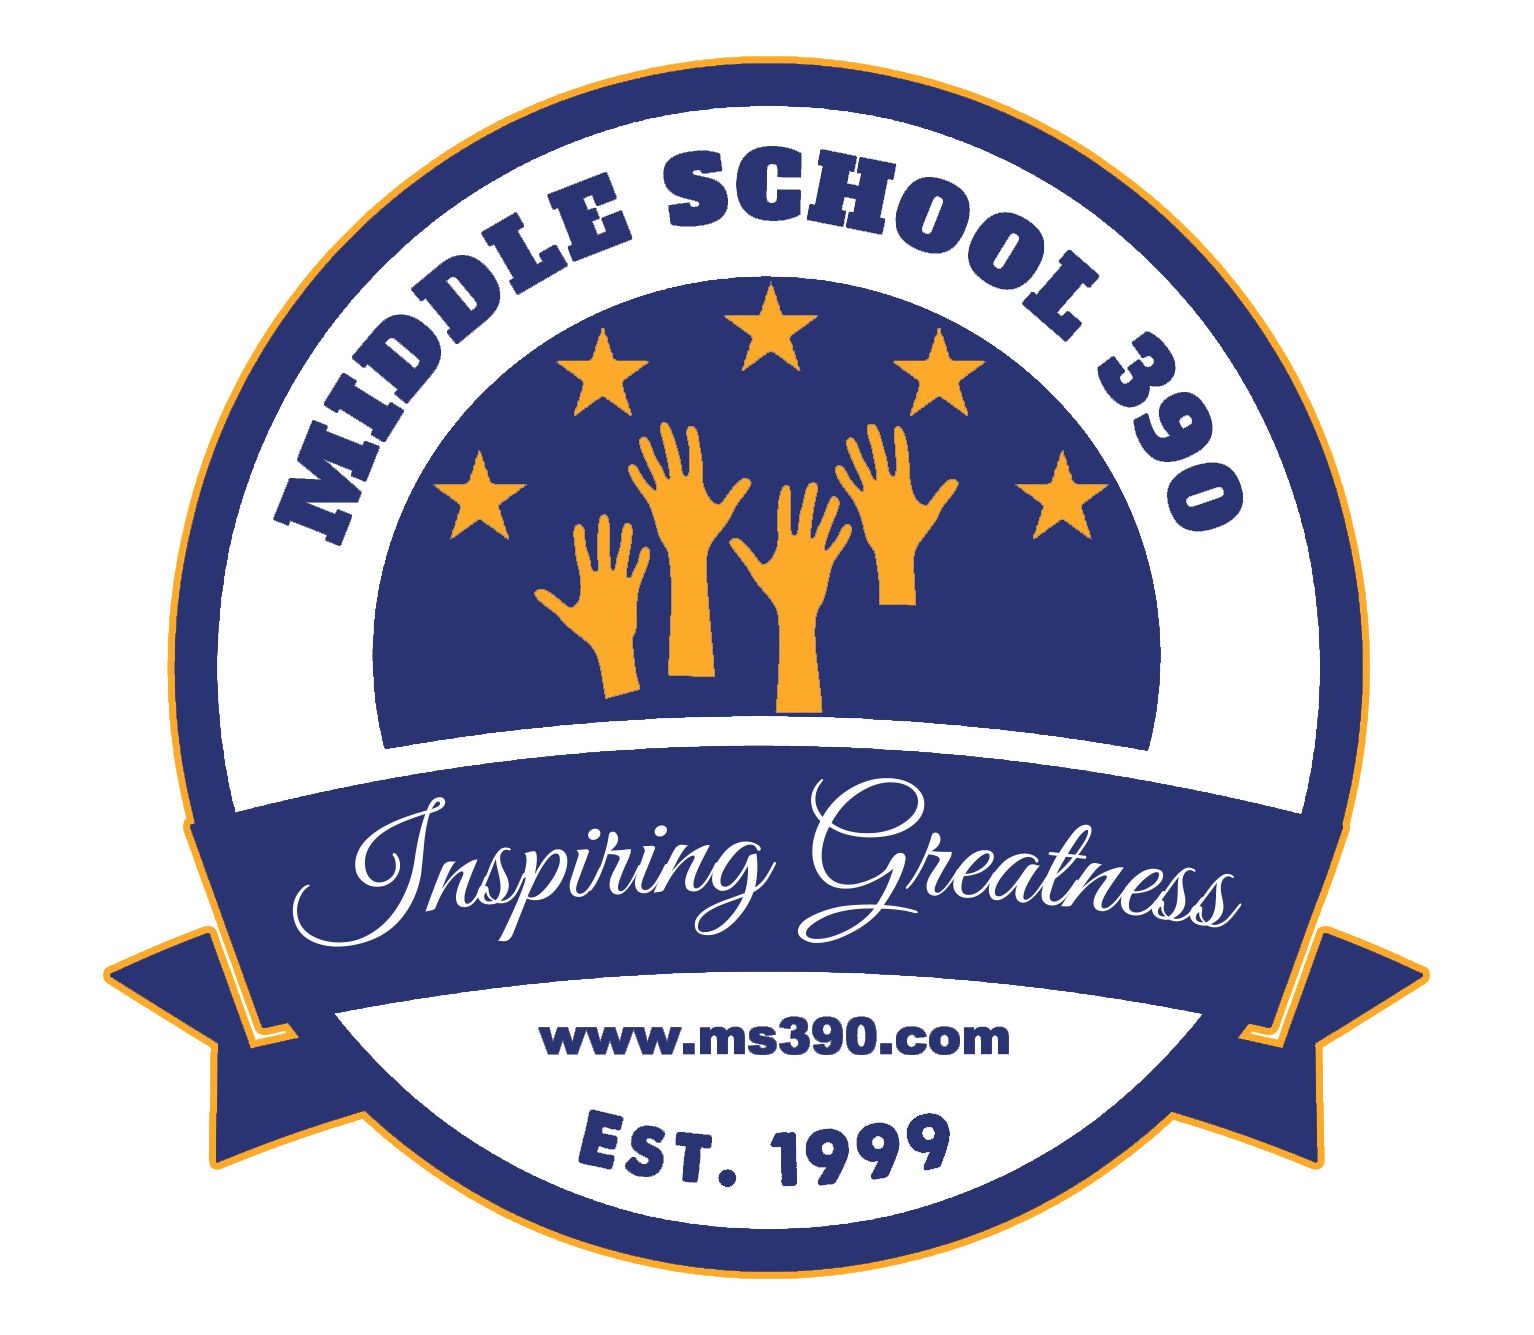 Middle School 390 Home Page